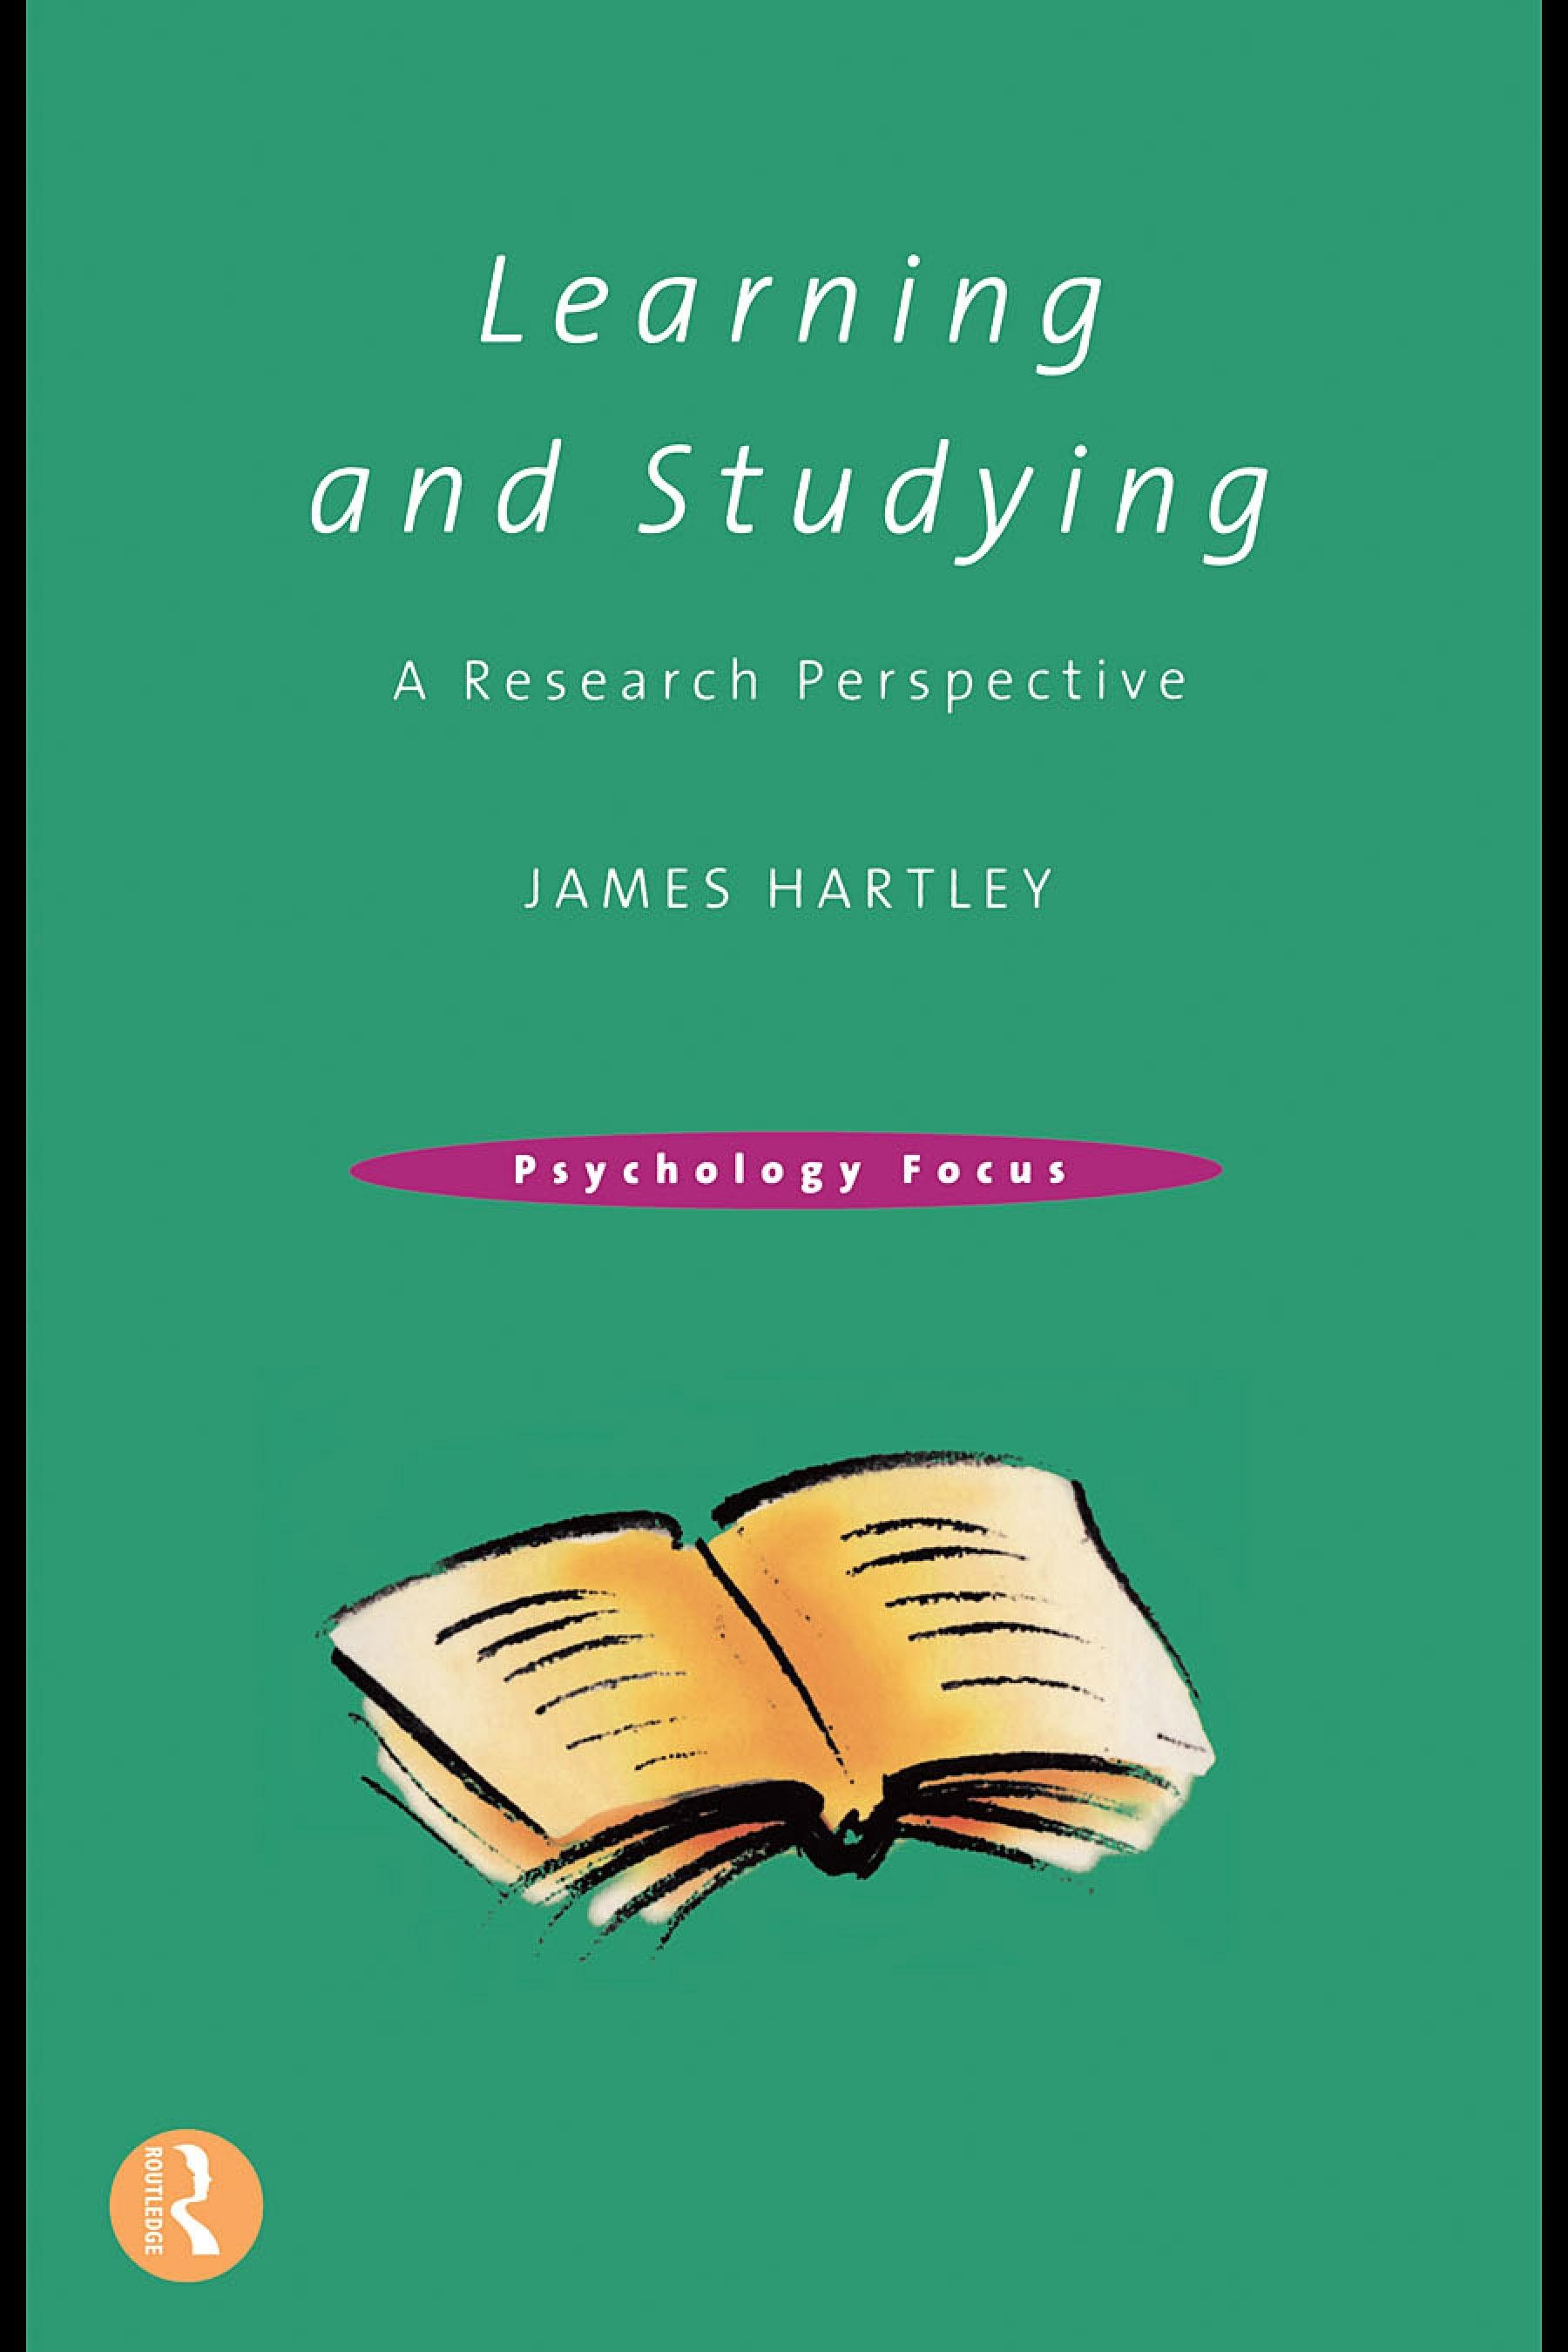 Learning and Studying: A Research Perspective